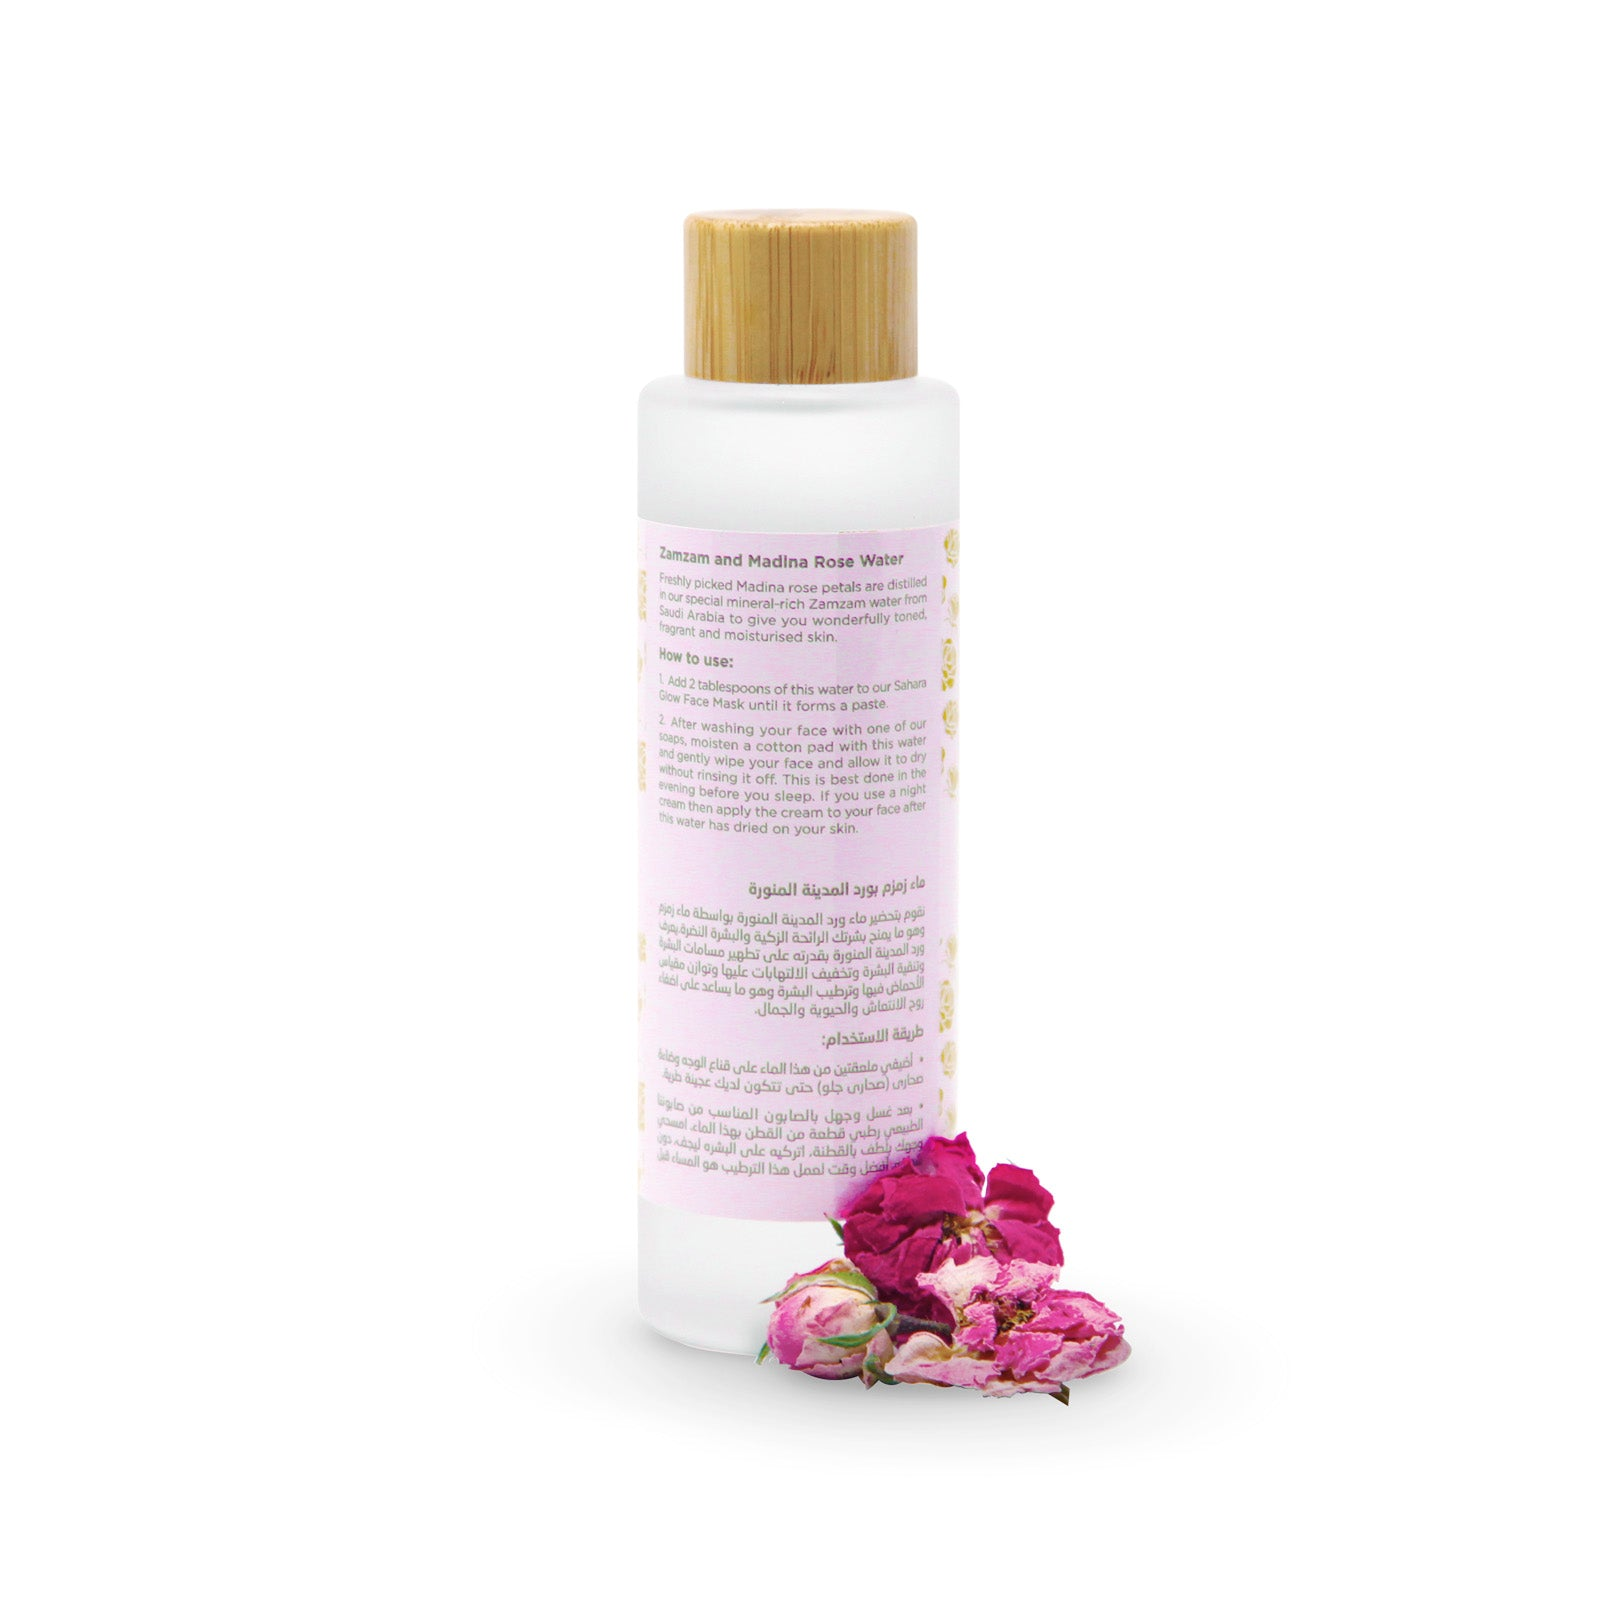 Zamzam and Madina Rose Face Toner - 120ml